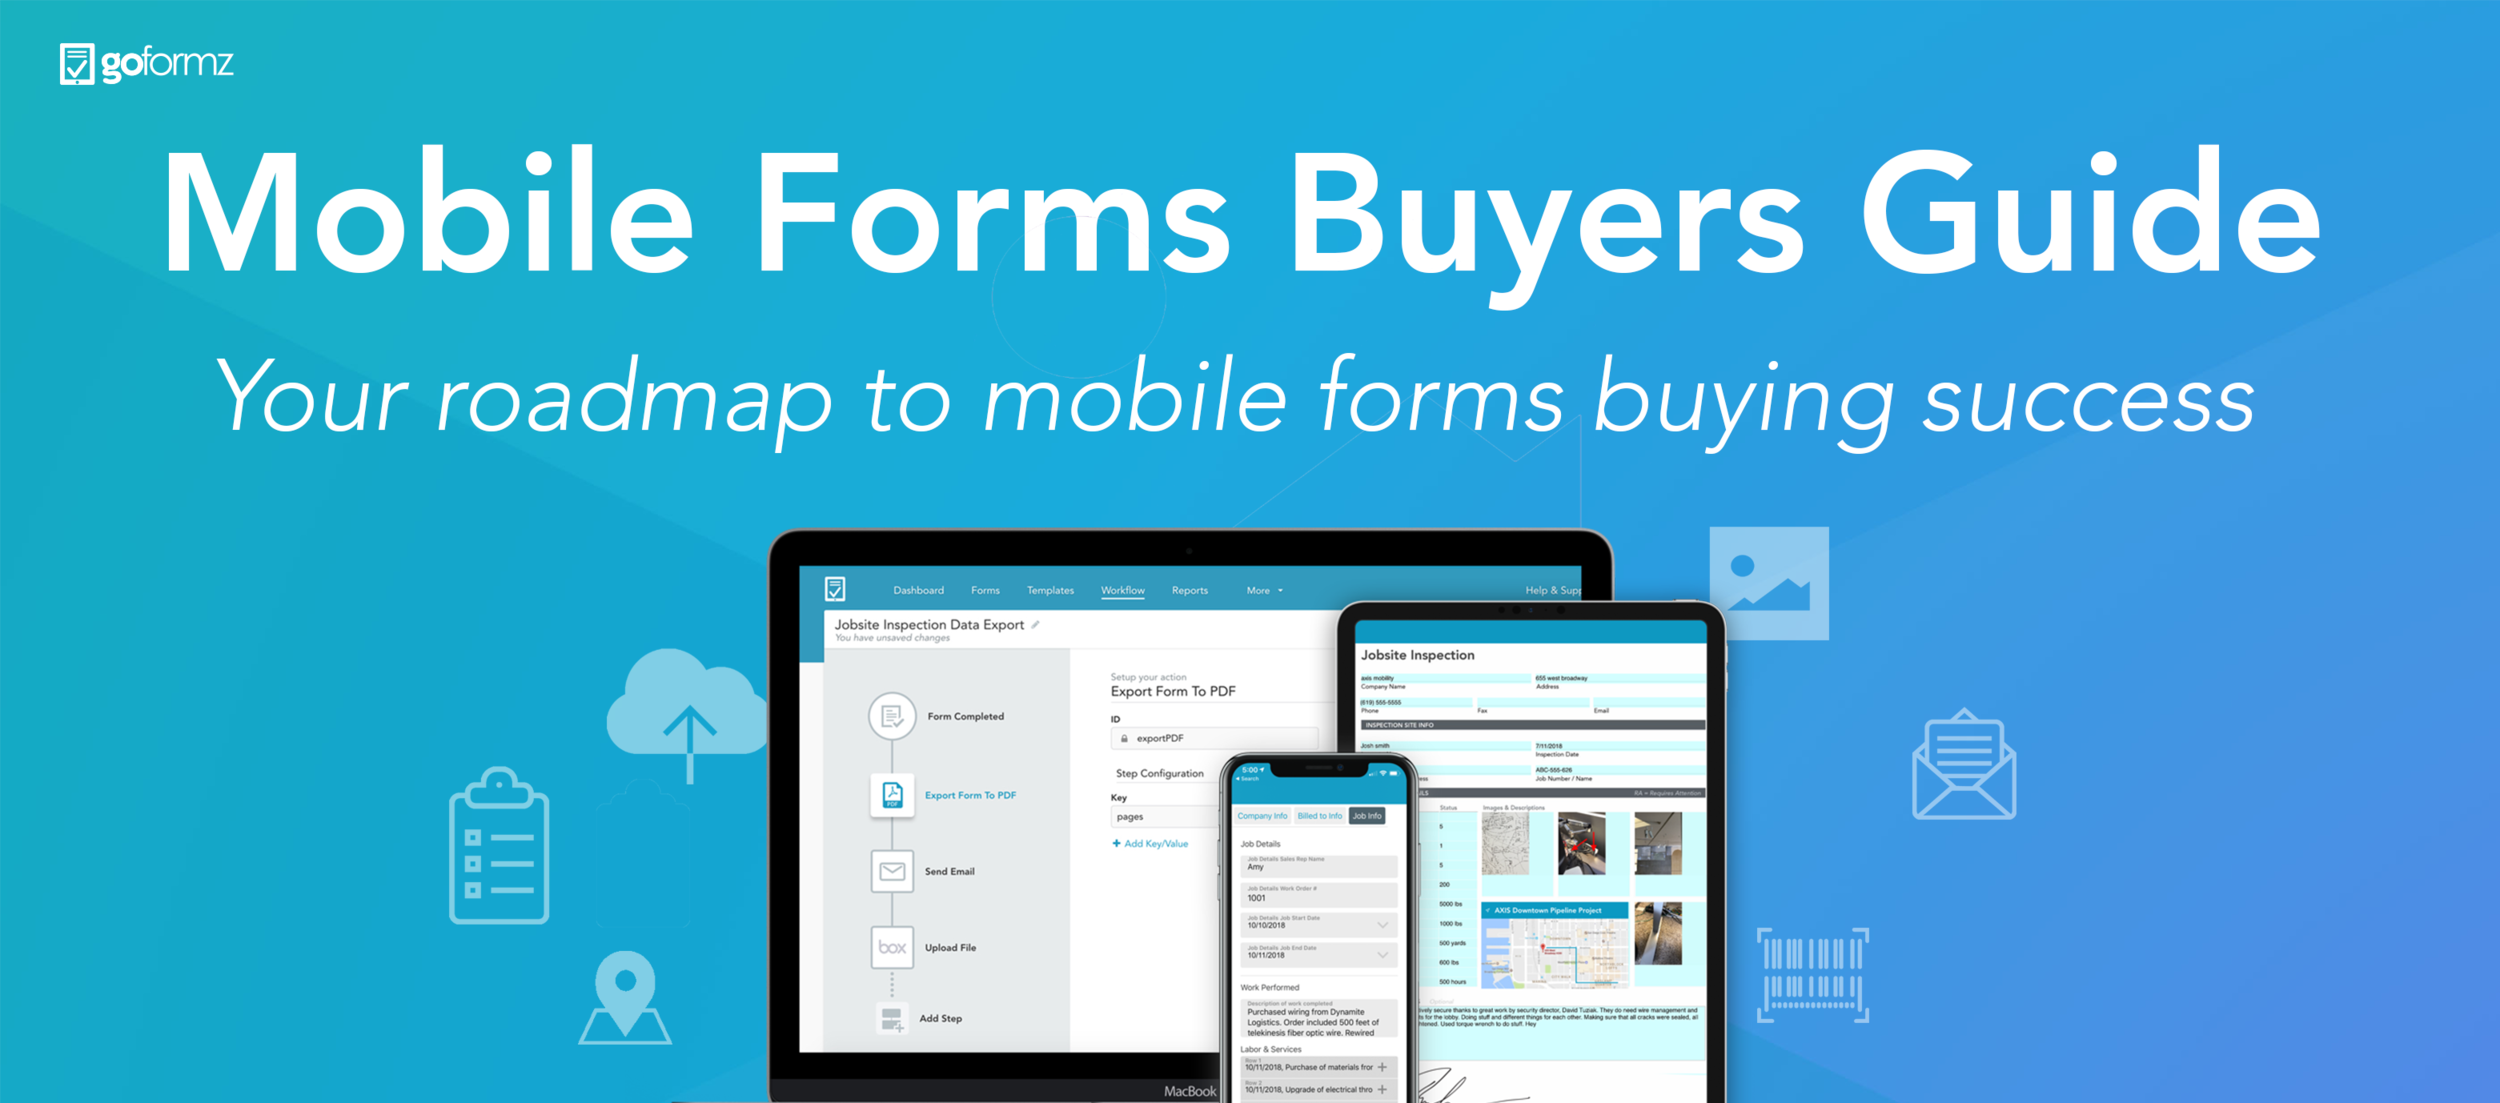 The mobile forms buyers guide will walk you through the mobile form fields and features to look for when selecting your data capture platform